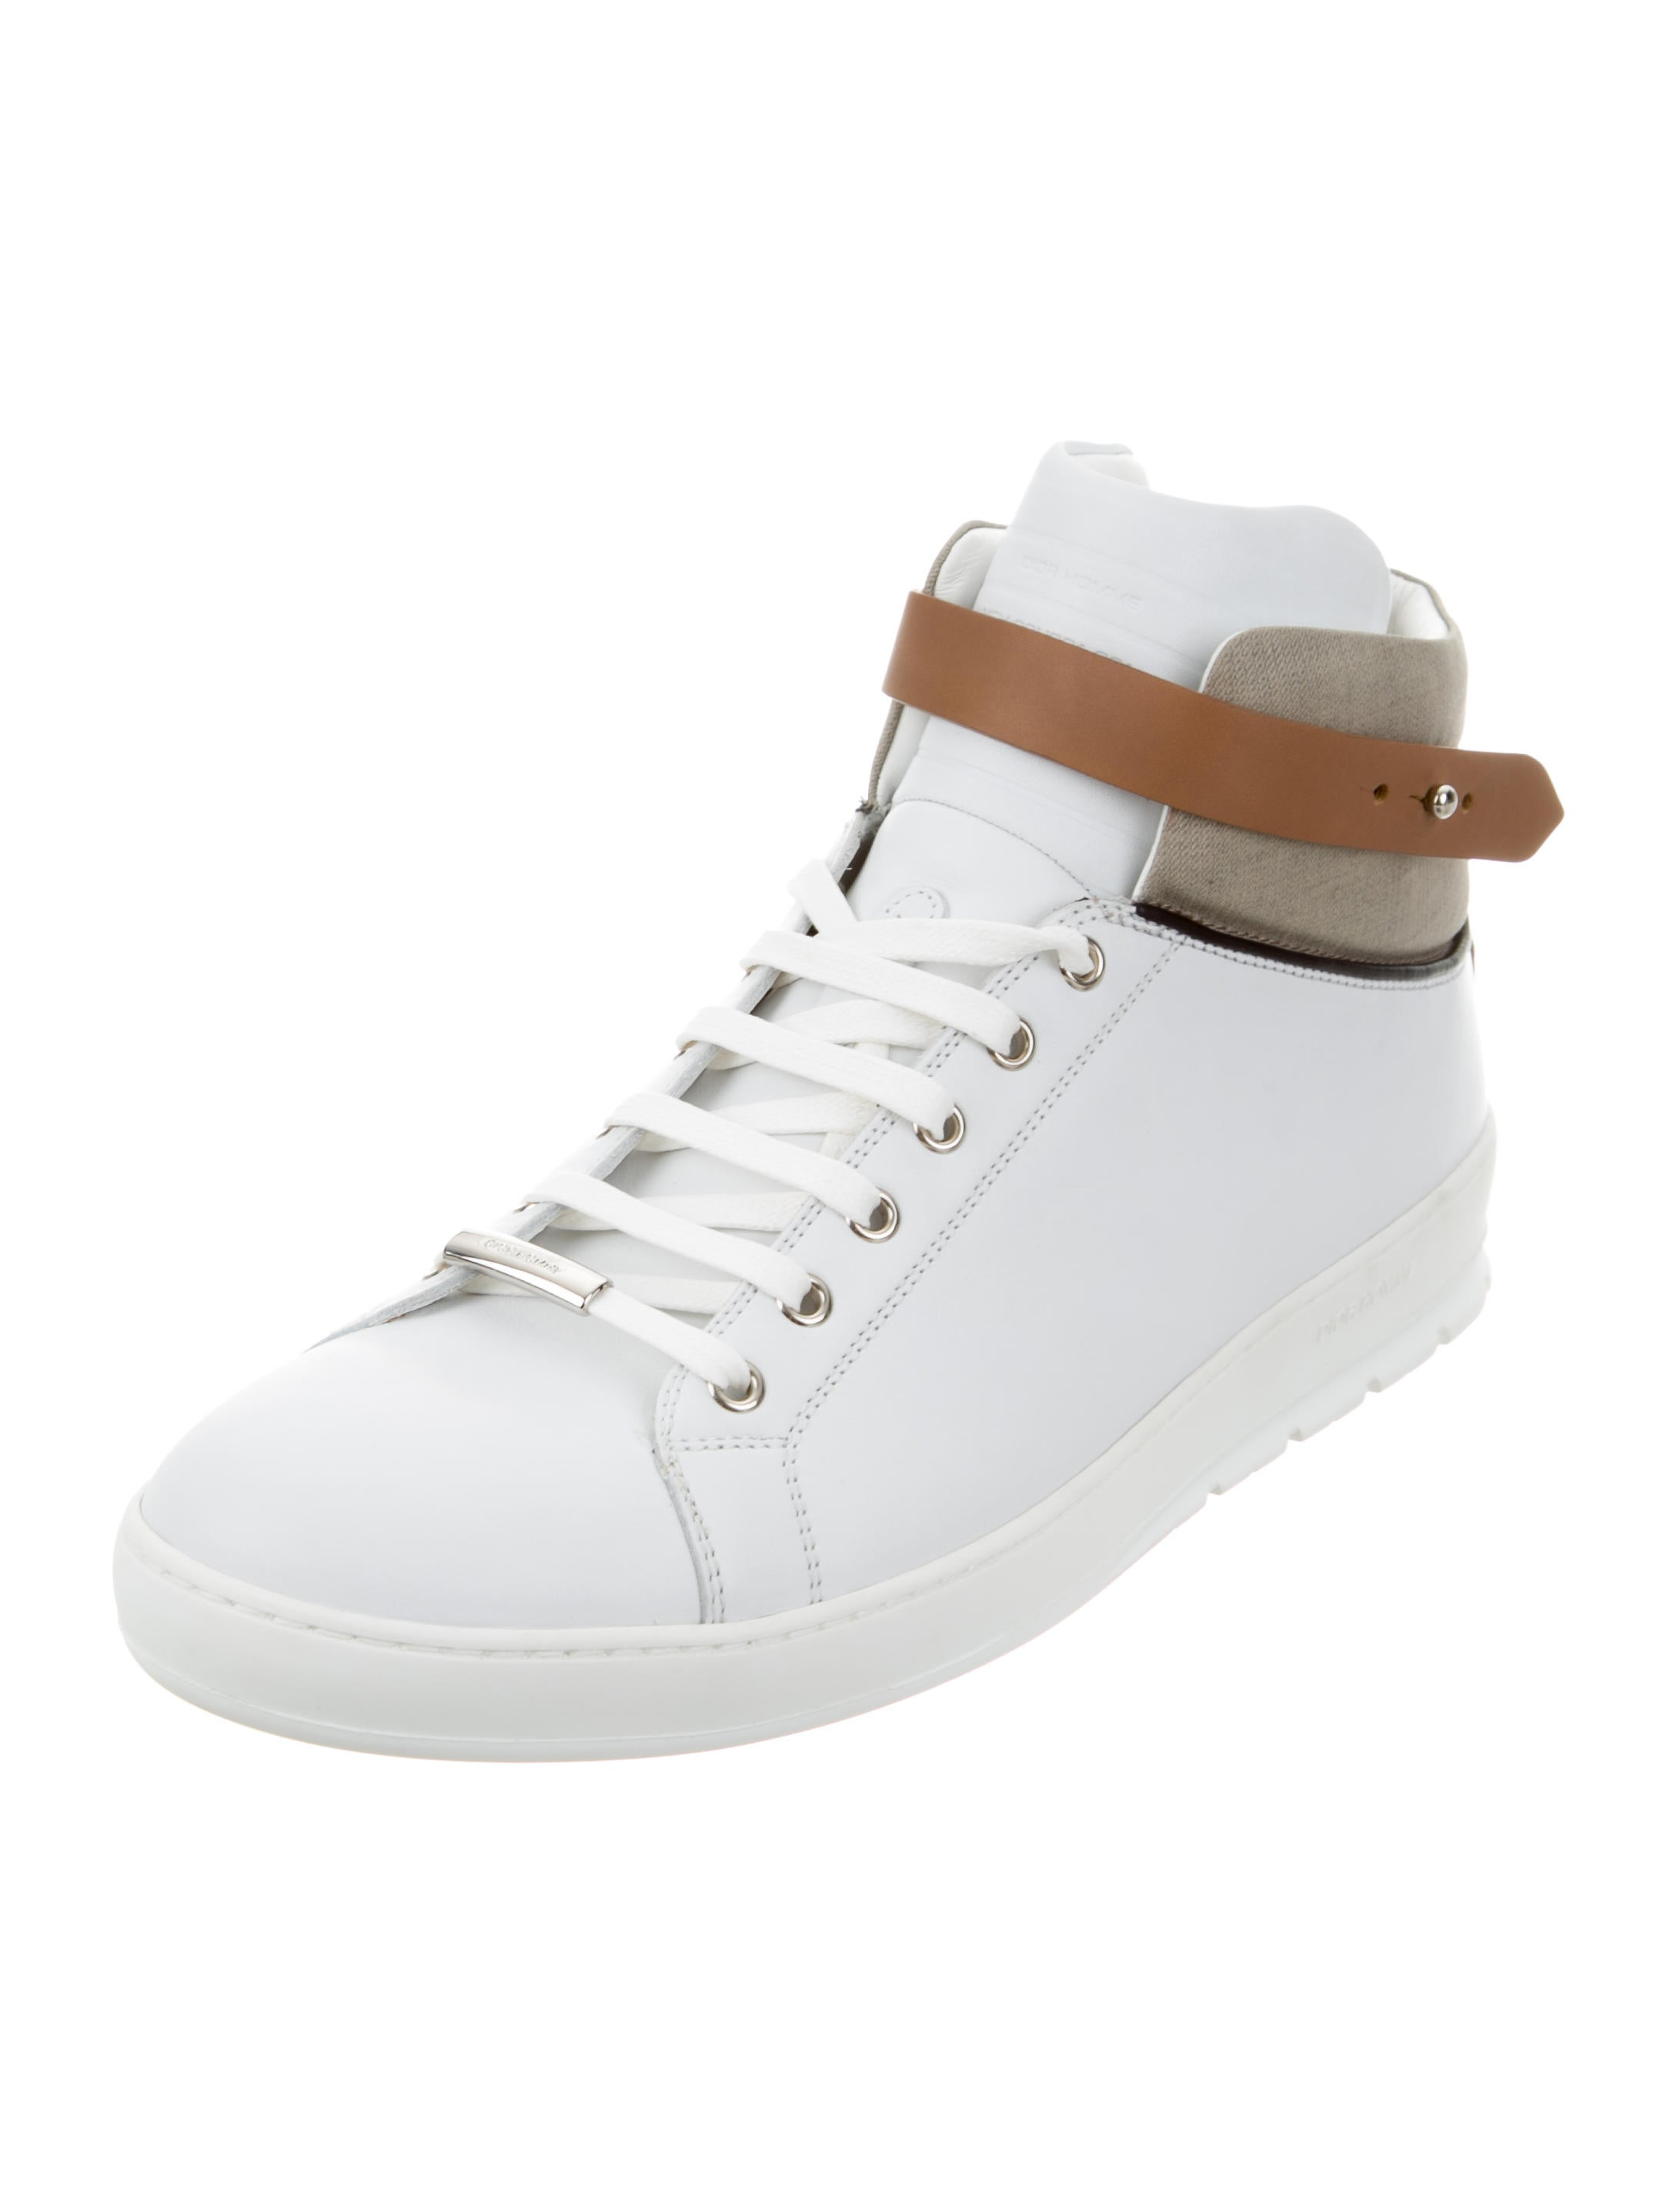 Dior Homme Leather High-Top Sneakers - 123.4KB